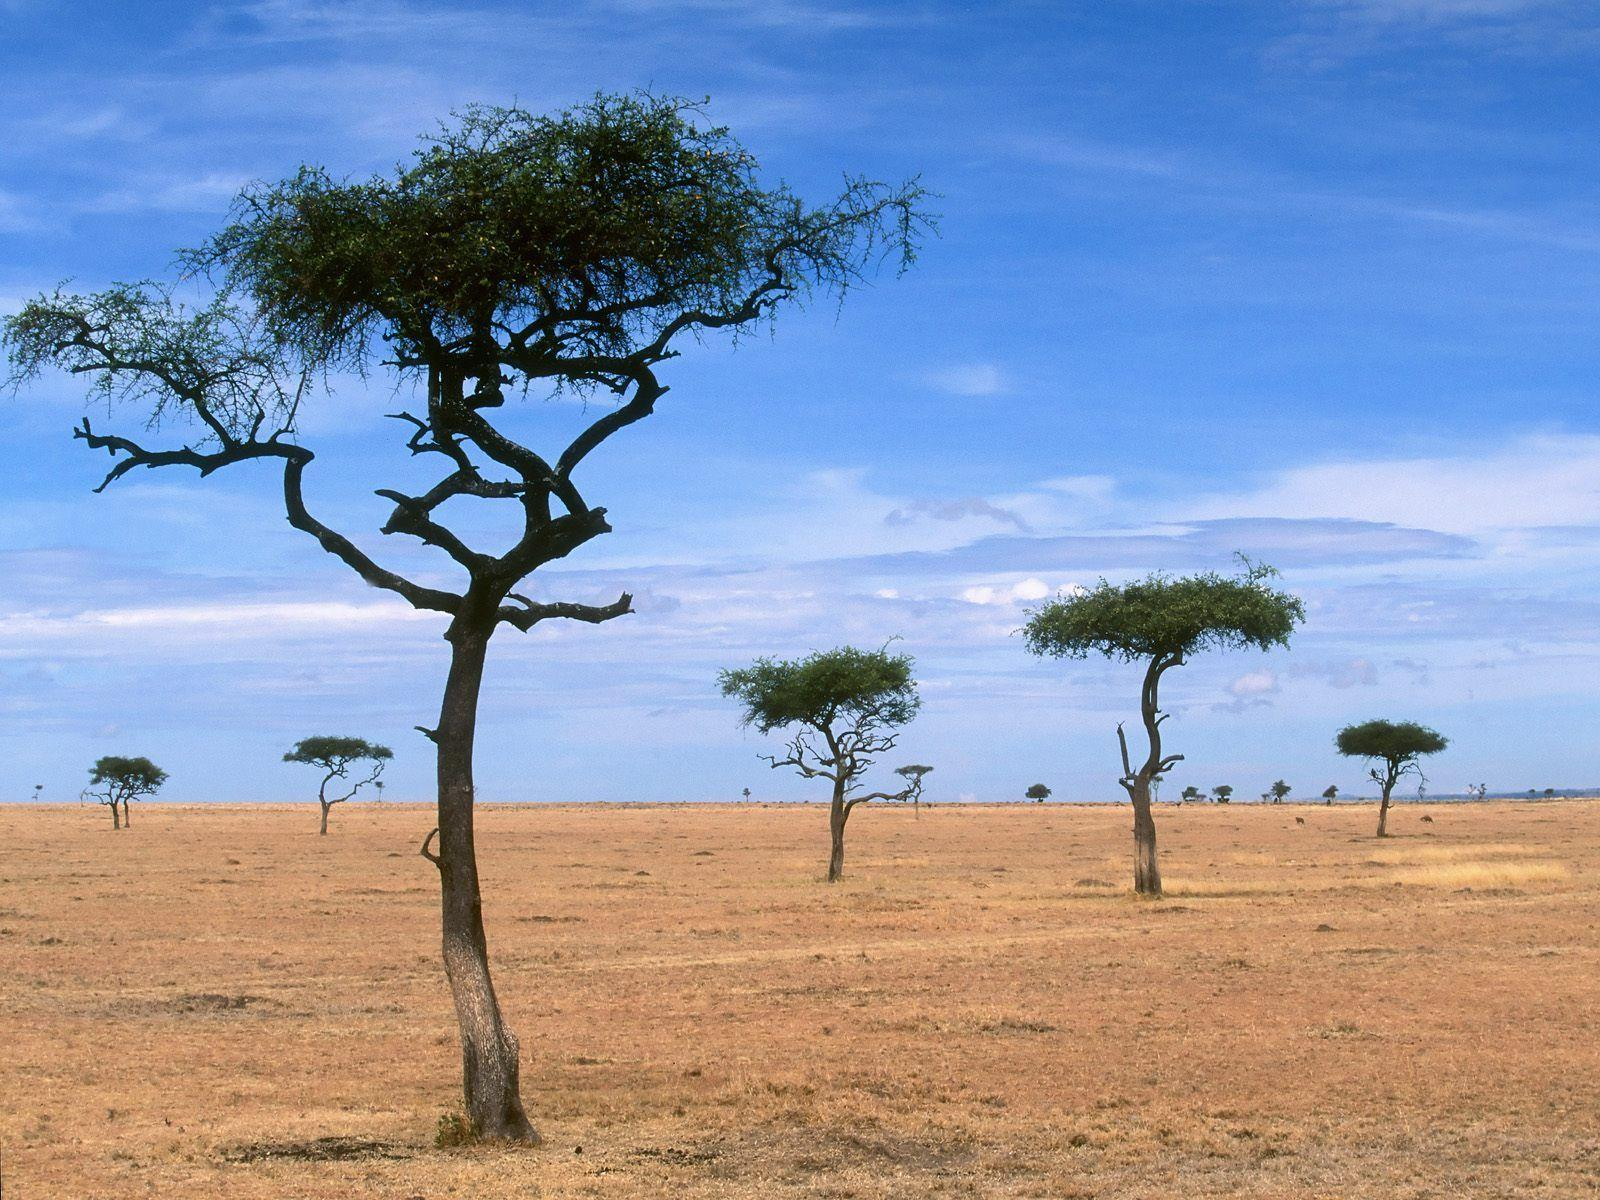 Scattered Acacia Trees / Kenya / Africa wallpapers and images ...